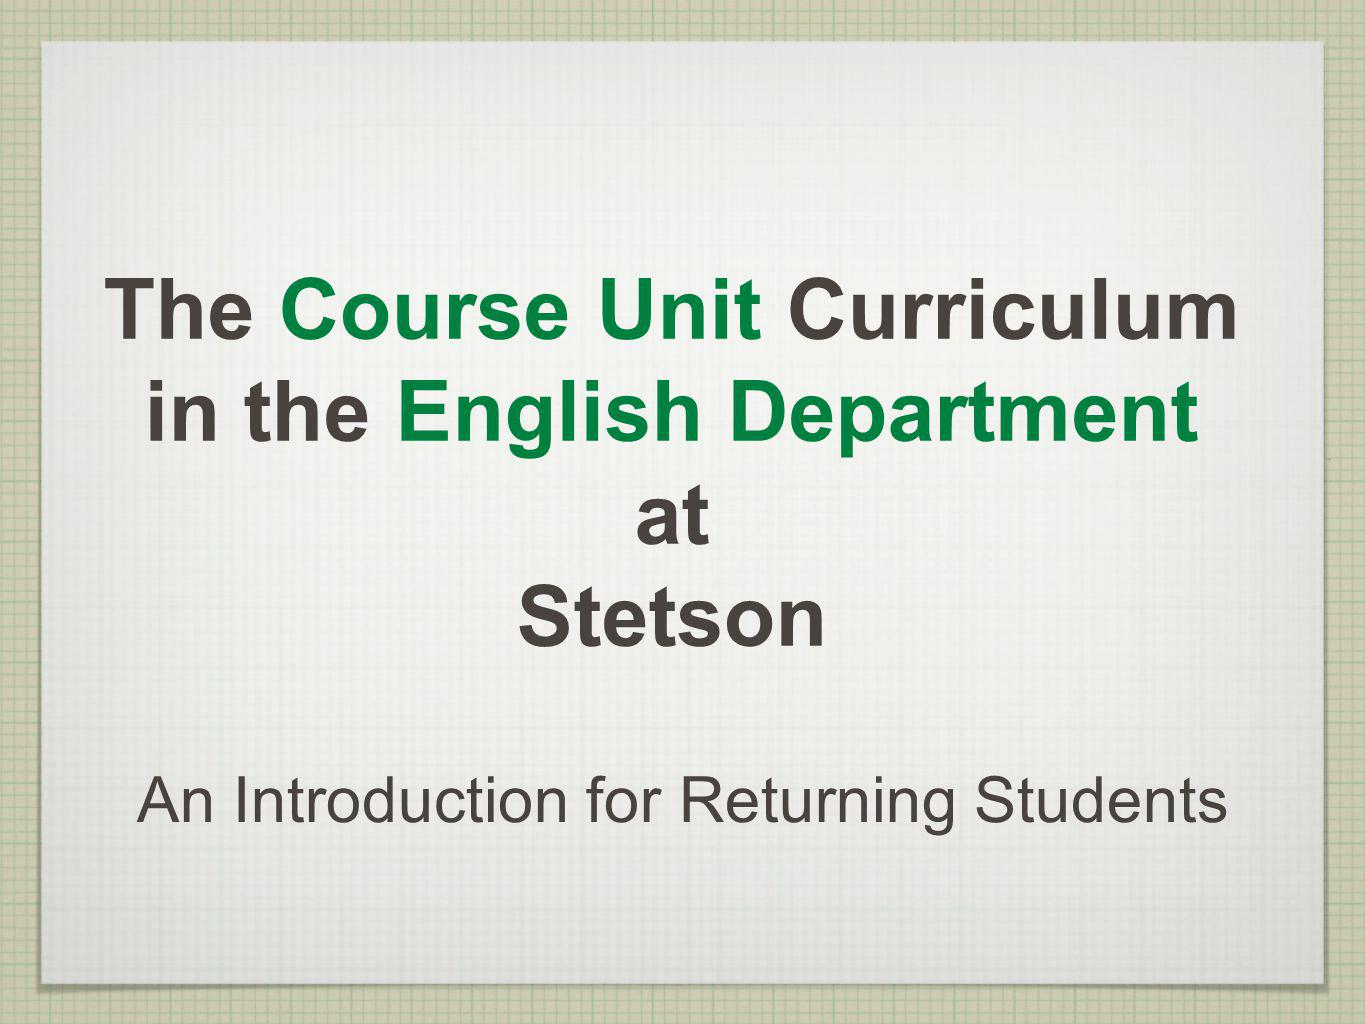 The Course Unit Curriculum in the English Department at Stetson An Introduction for Returning Students